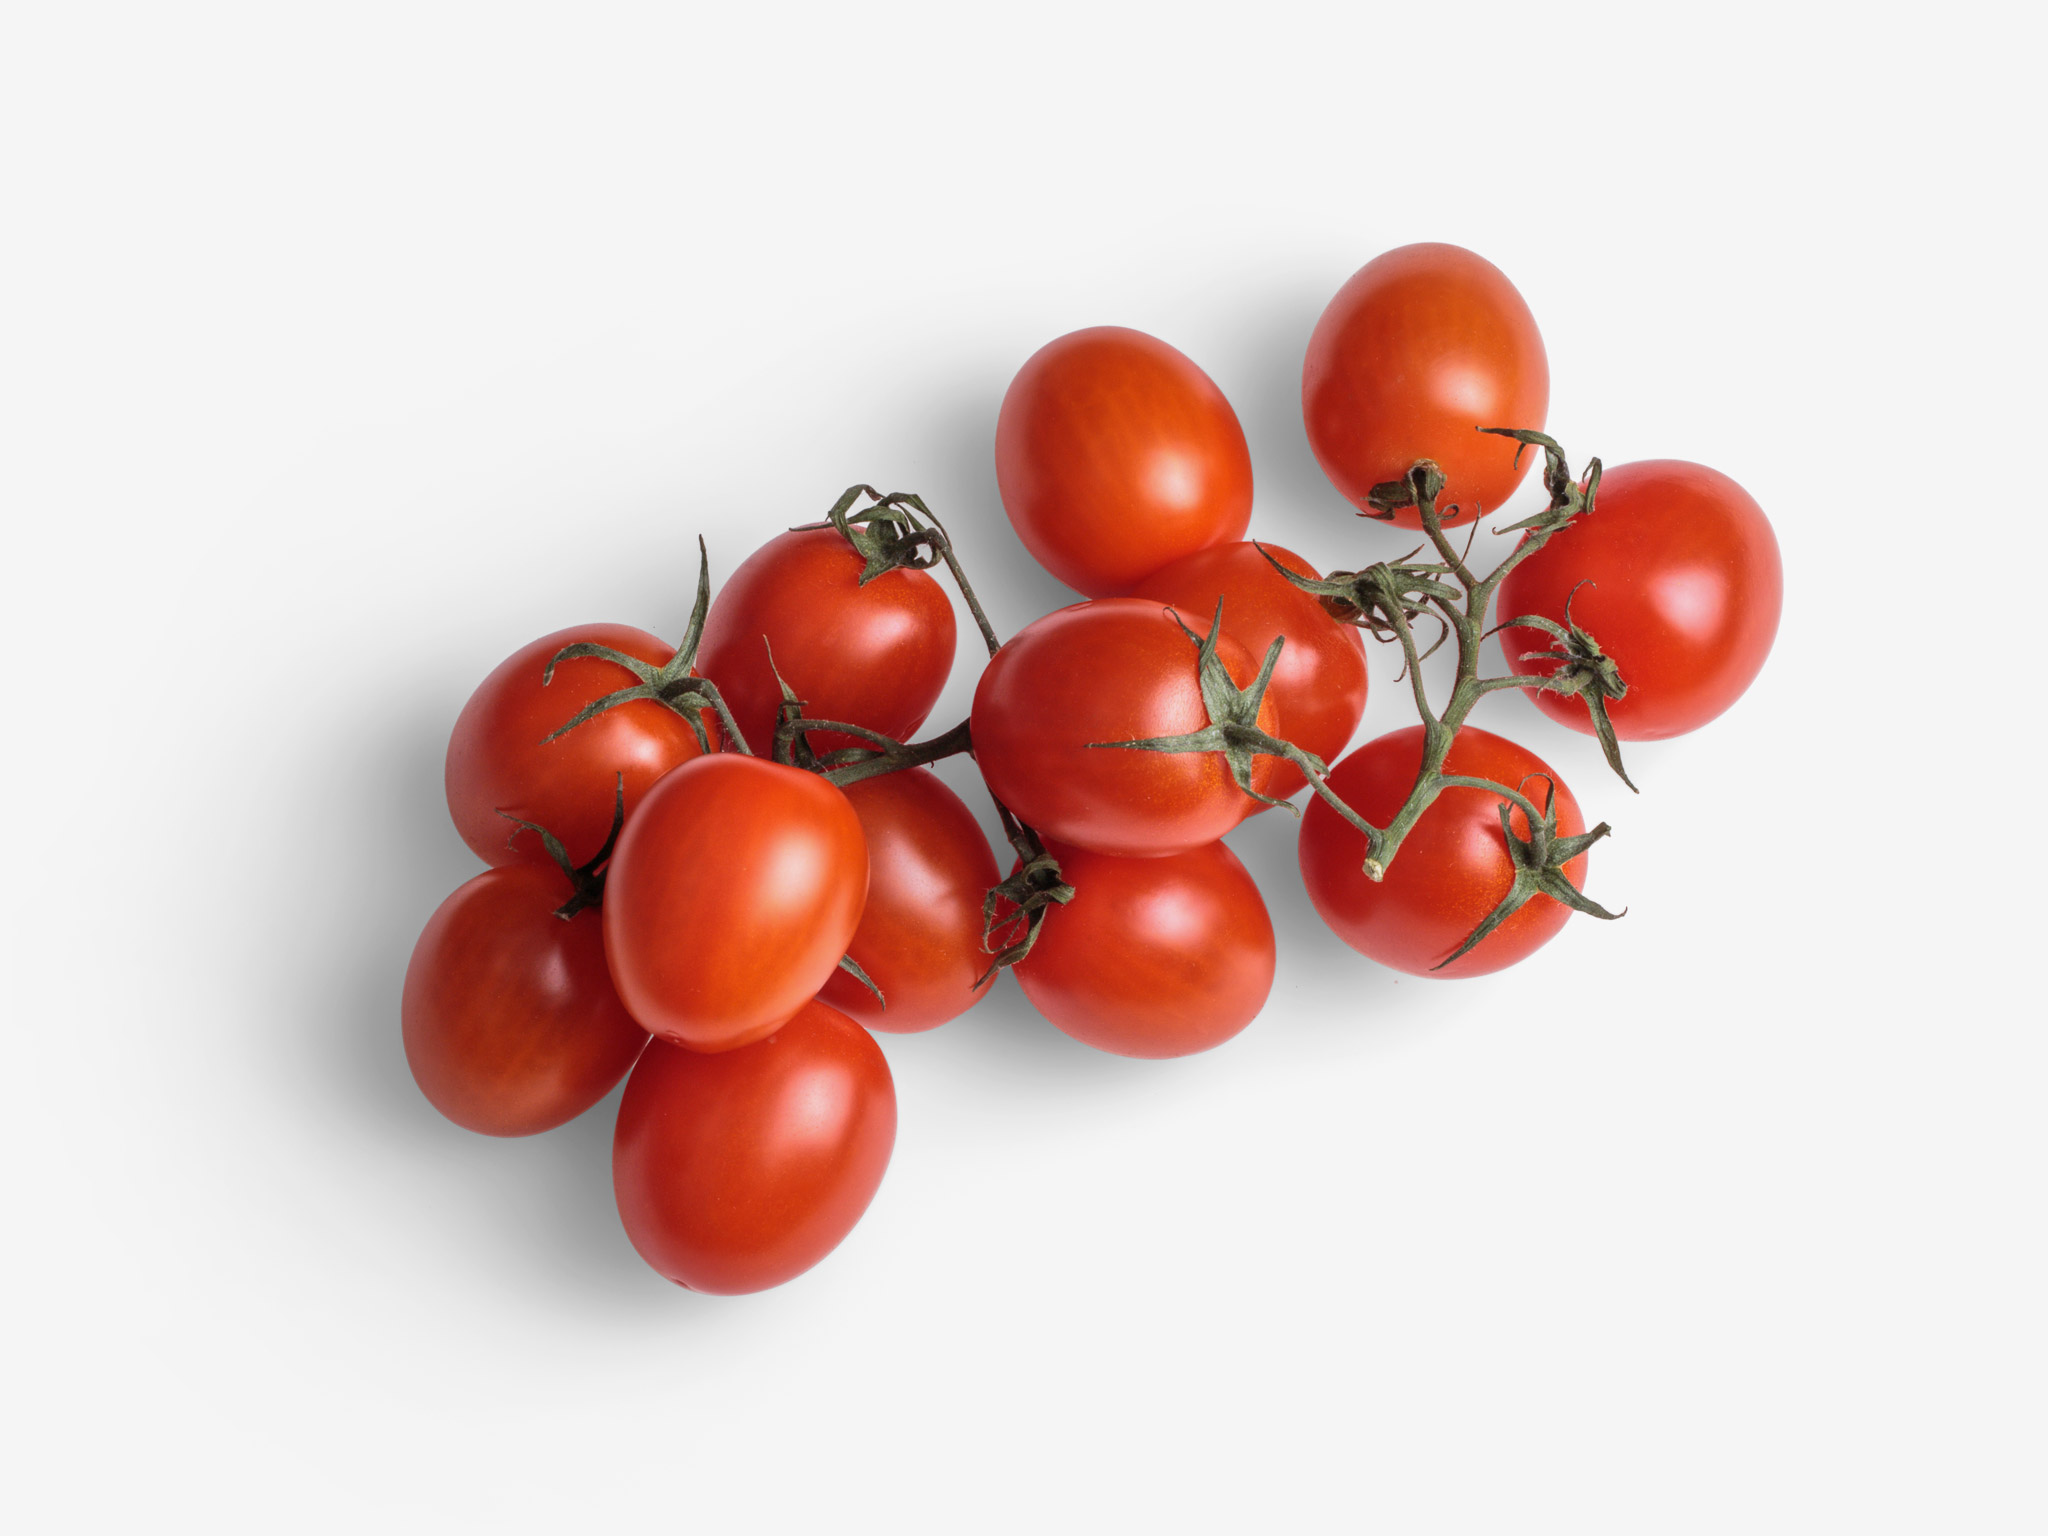 Cherry PSD image with transparent background